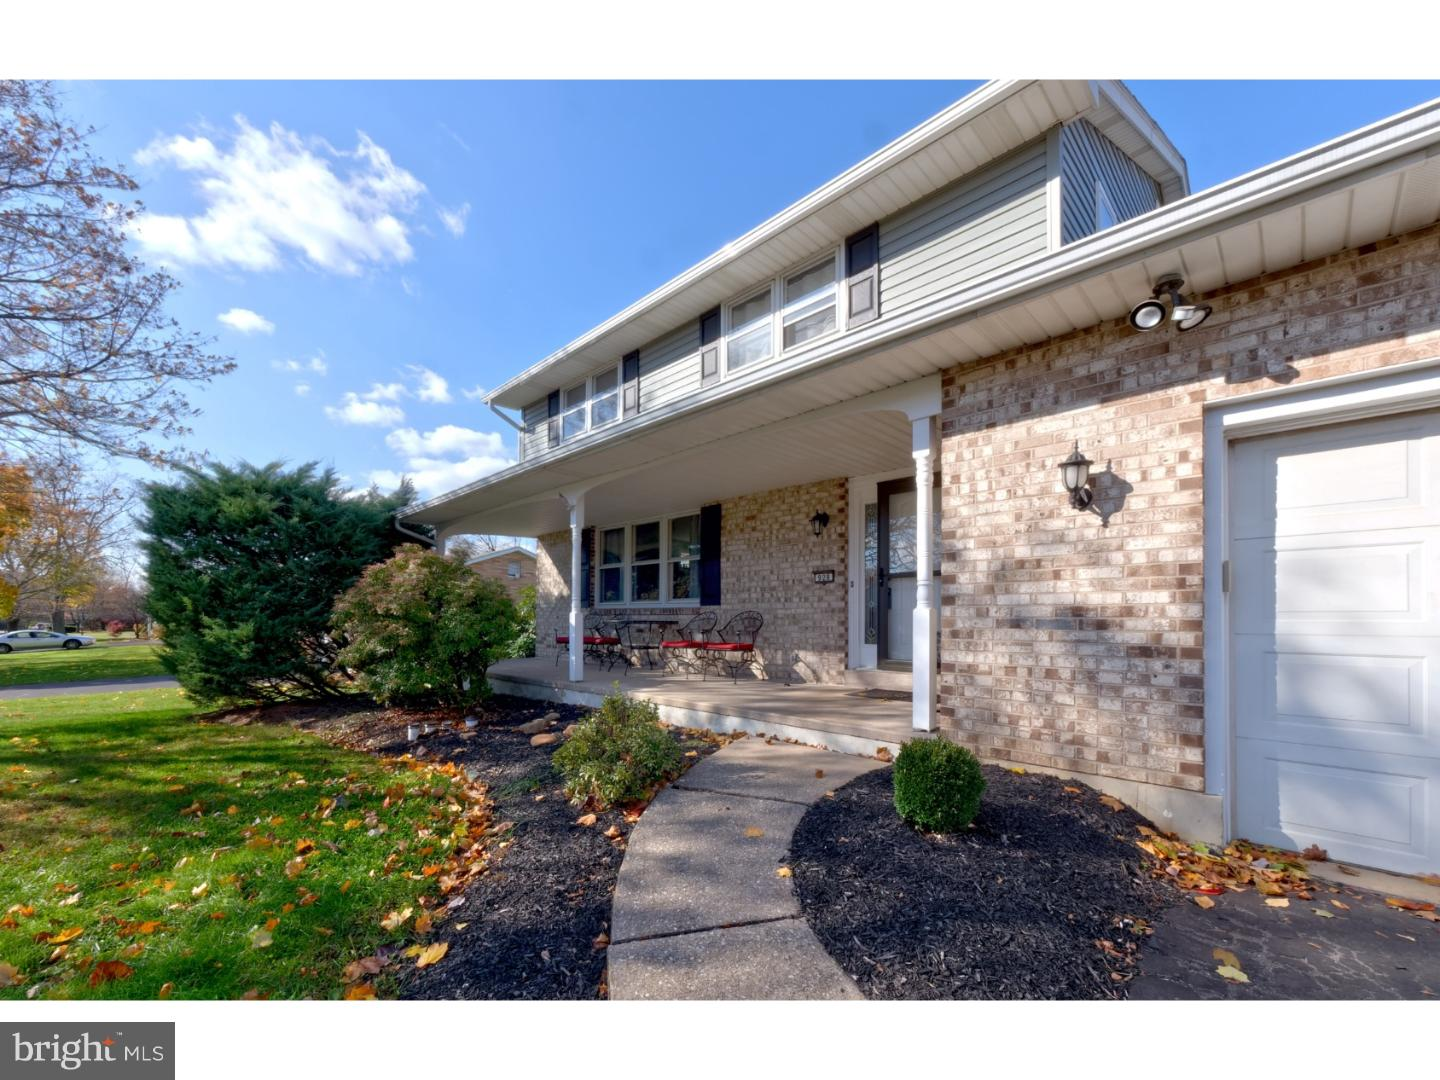 928 BELFORD ROAD, ALLENTOWN, PA 18103